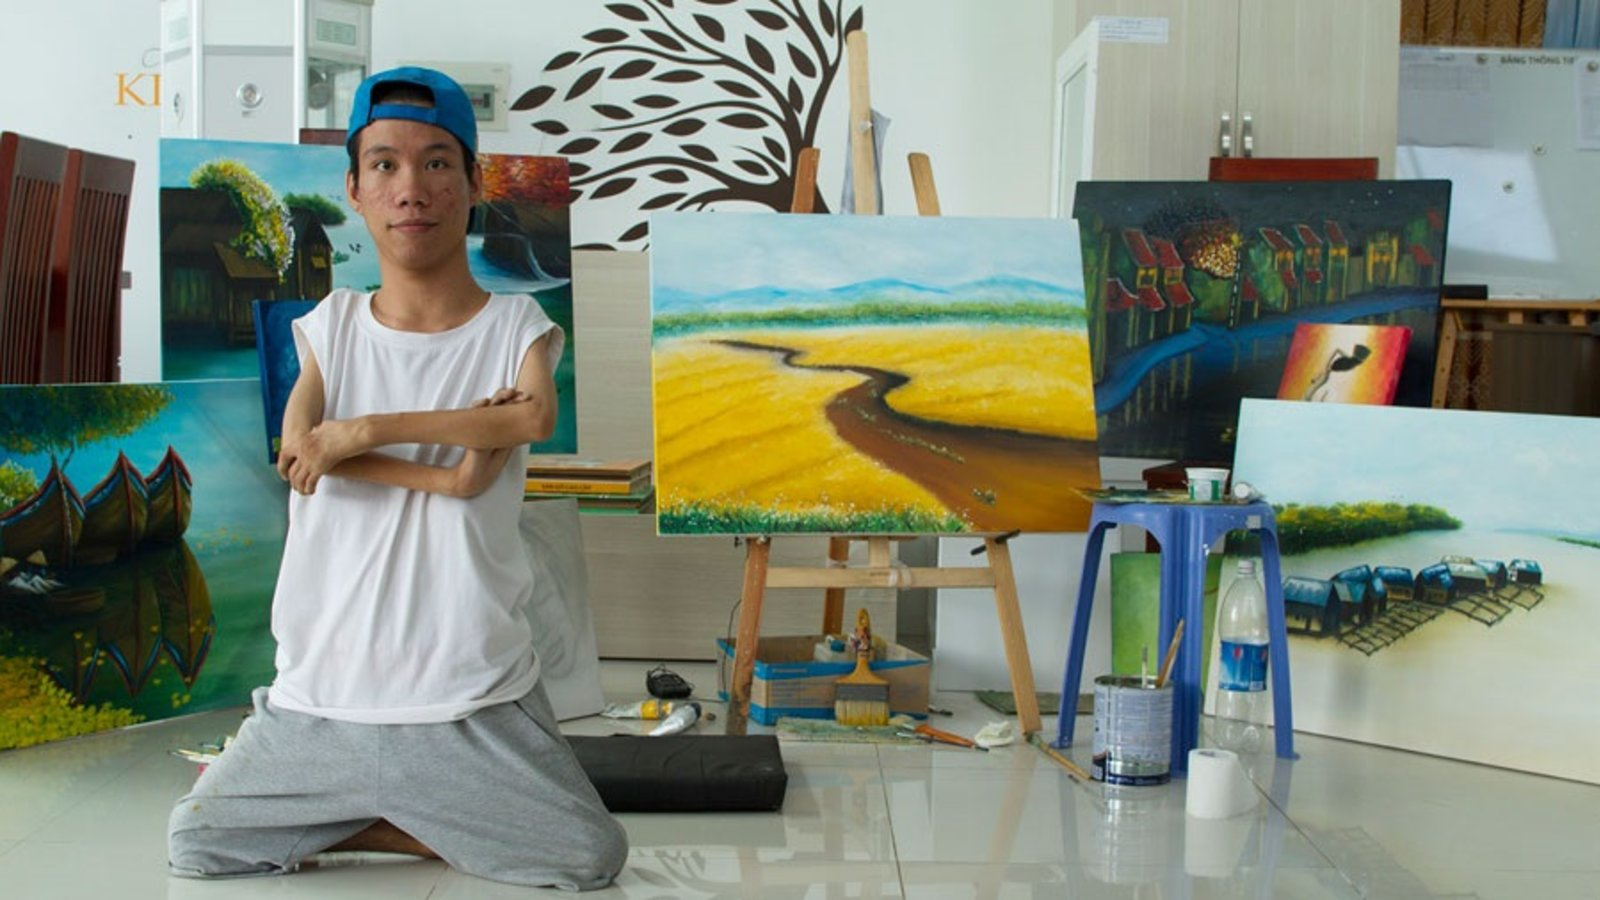 Chau, Beyond the Lines - A Vietnamese Teenager Follows his Dreams